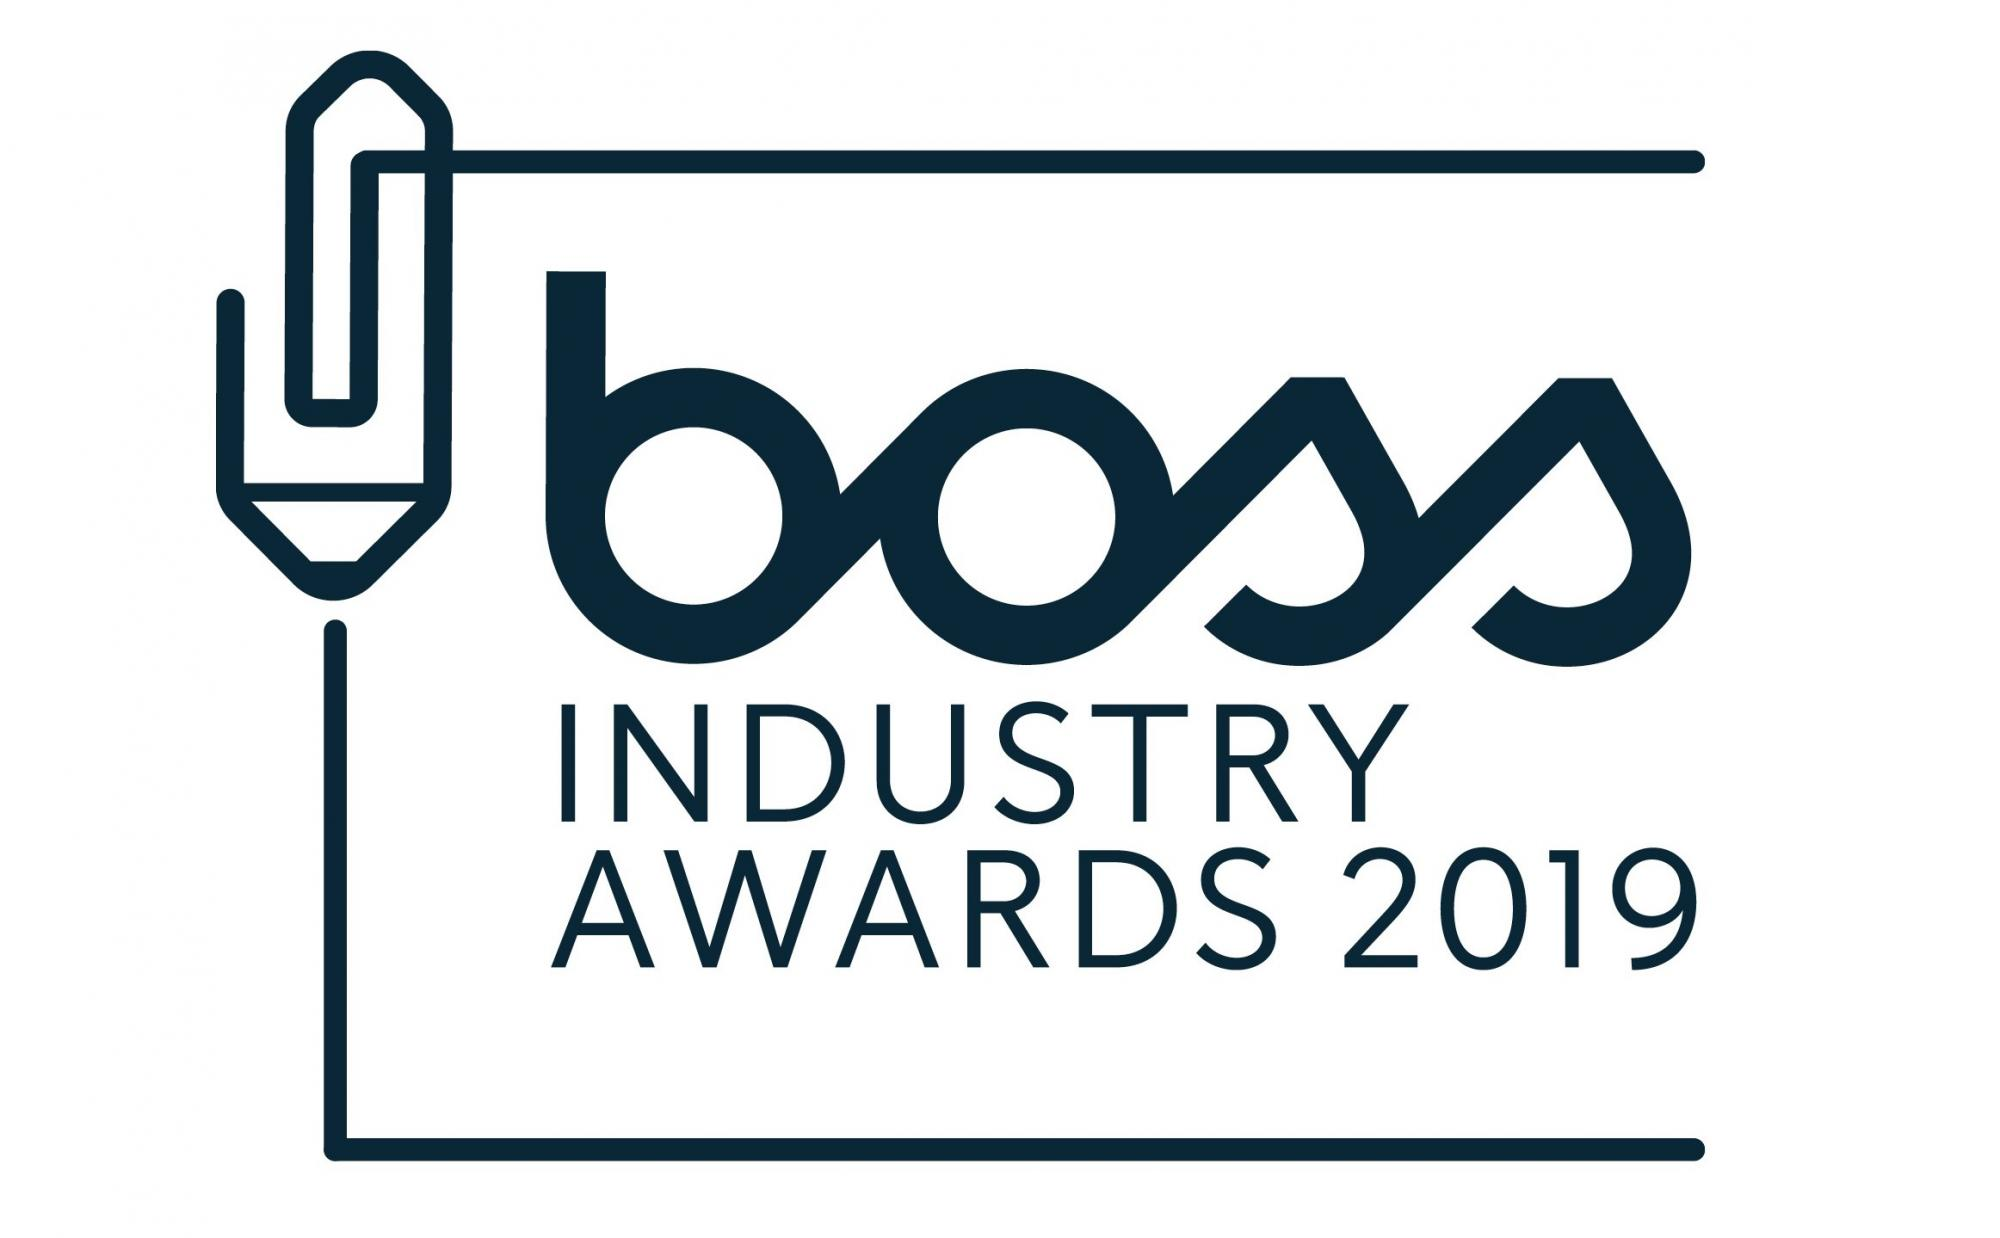 Boss Industry Awards 2019